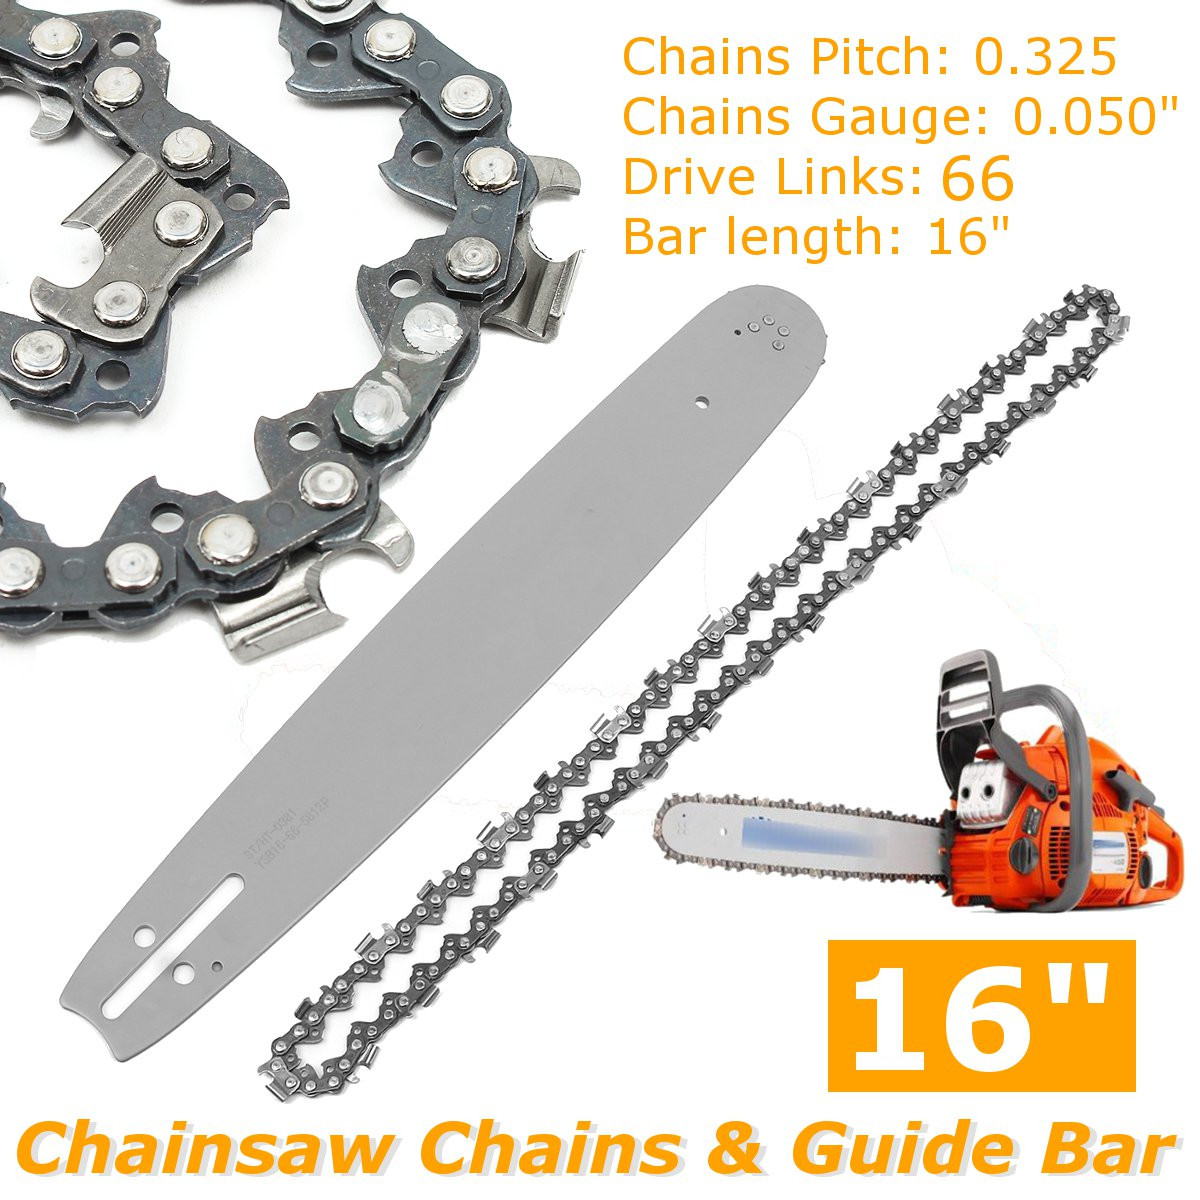 2Pcs 16 inch Chainsaw Chains  Guide Bar Semi Chisel Chain For Husqvarna POULAN 36 41 50 51 55 346XP 450 455 460 66DL